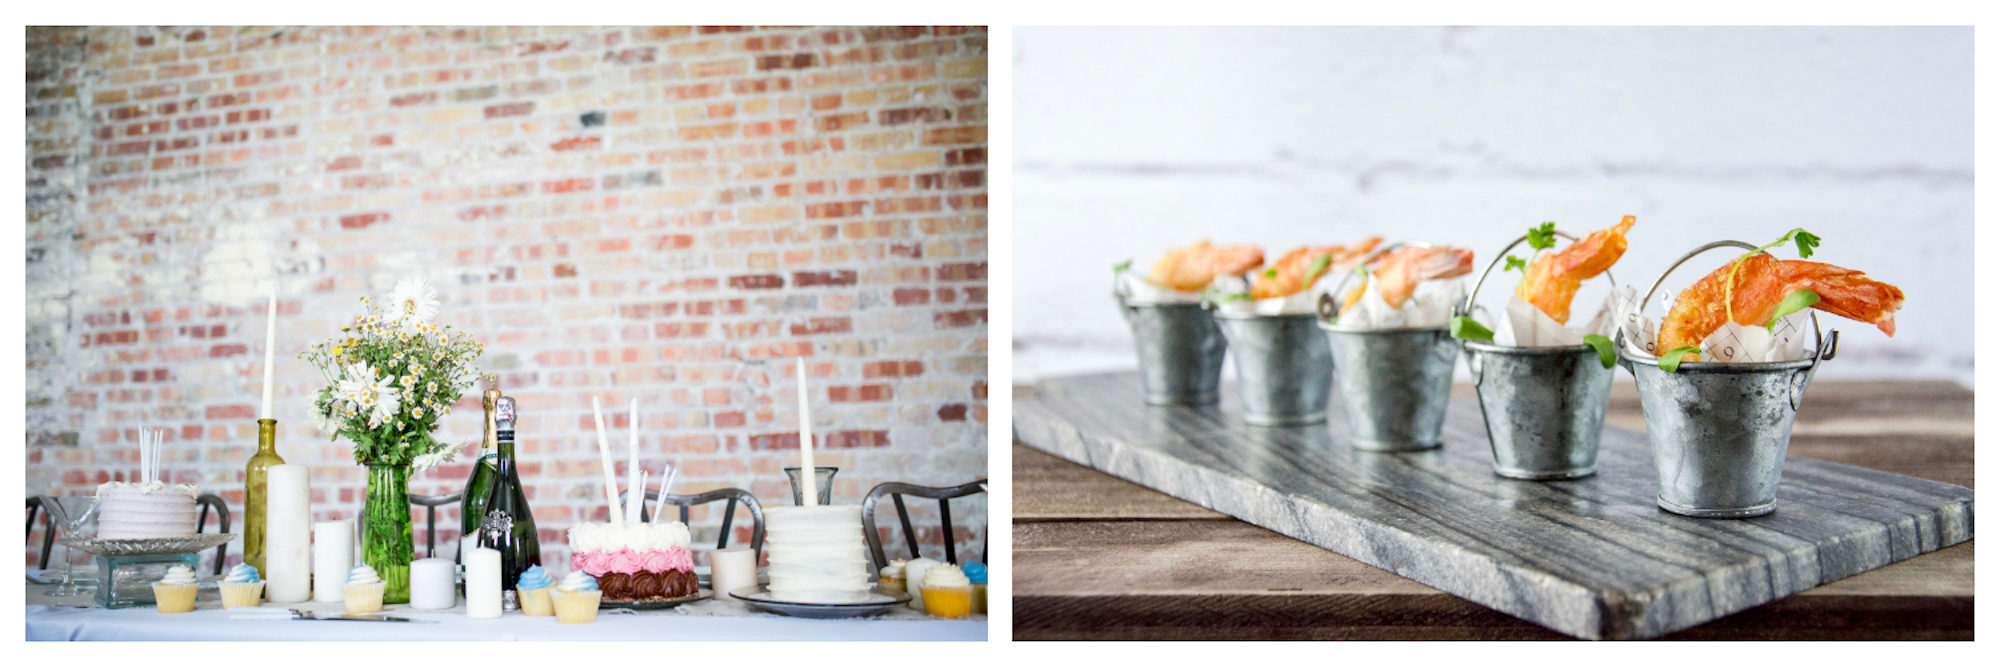 Champagne can go really well with dessert cake (left) or seafood appetizers (right).